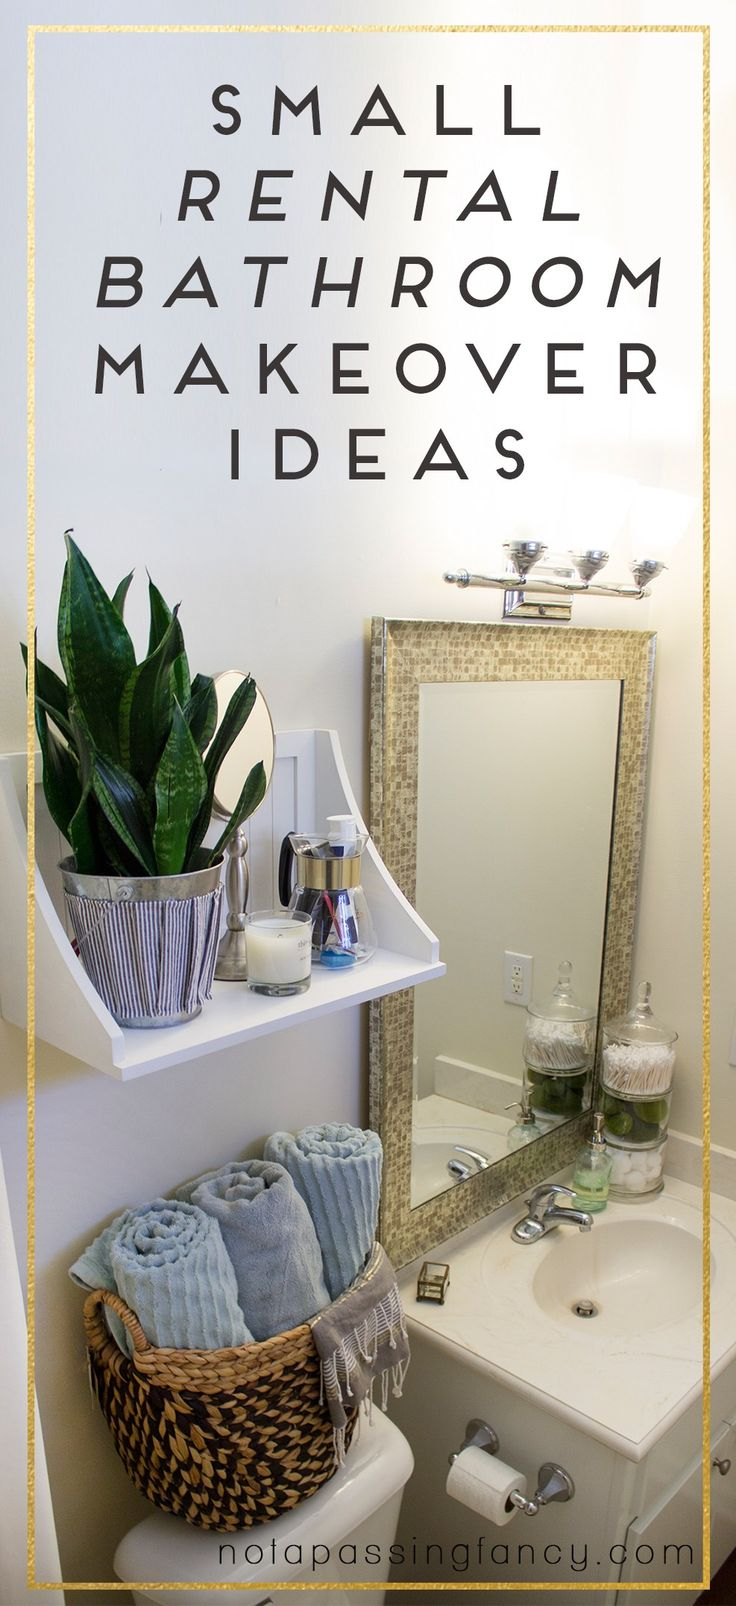 Best 25 rental bathroom ideas on pinterest rental decorating small rental bathroom and - Rental apartment decorating ideas ...